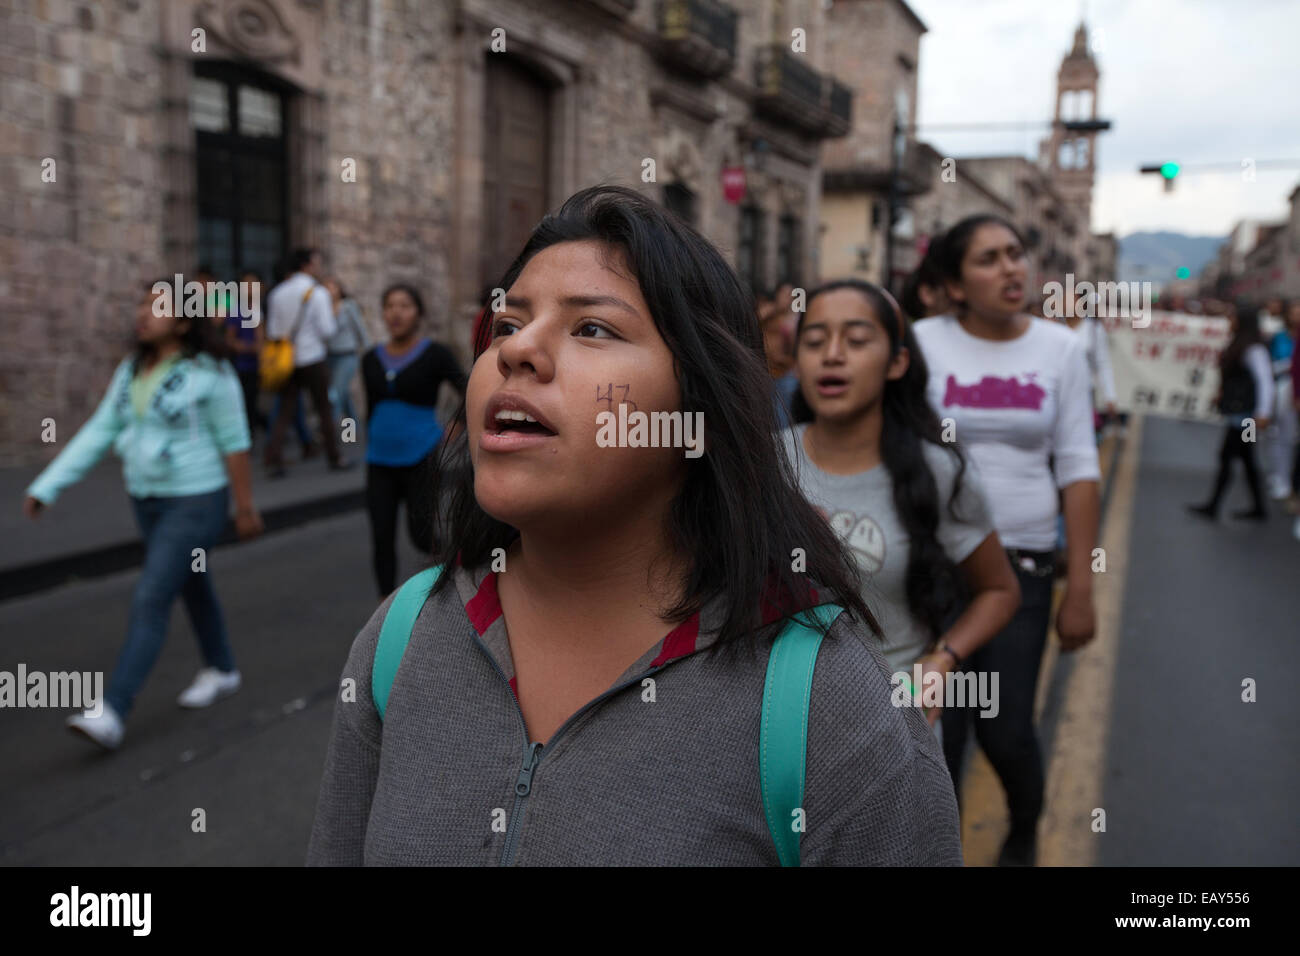 Demonstrators march to demande justice for the disappearance of 43 students from Ayotzinapa's teacher training college - Stock Image